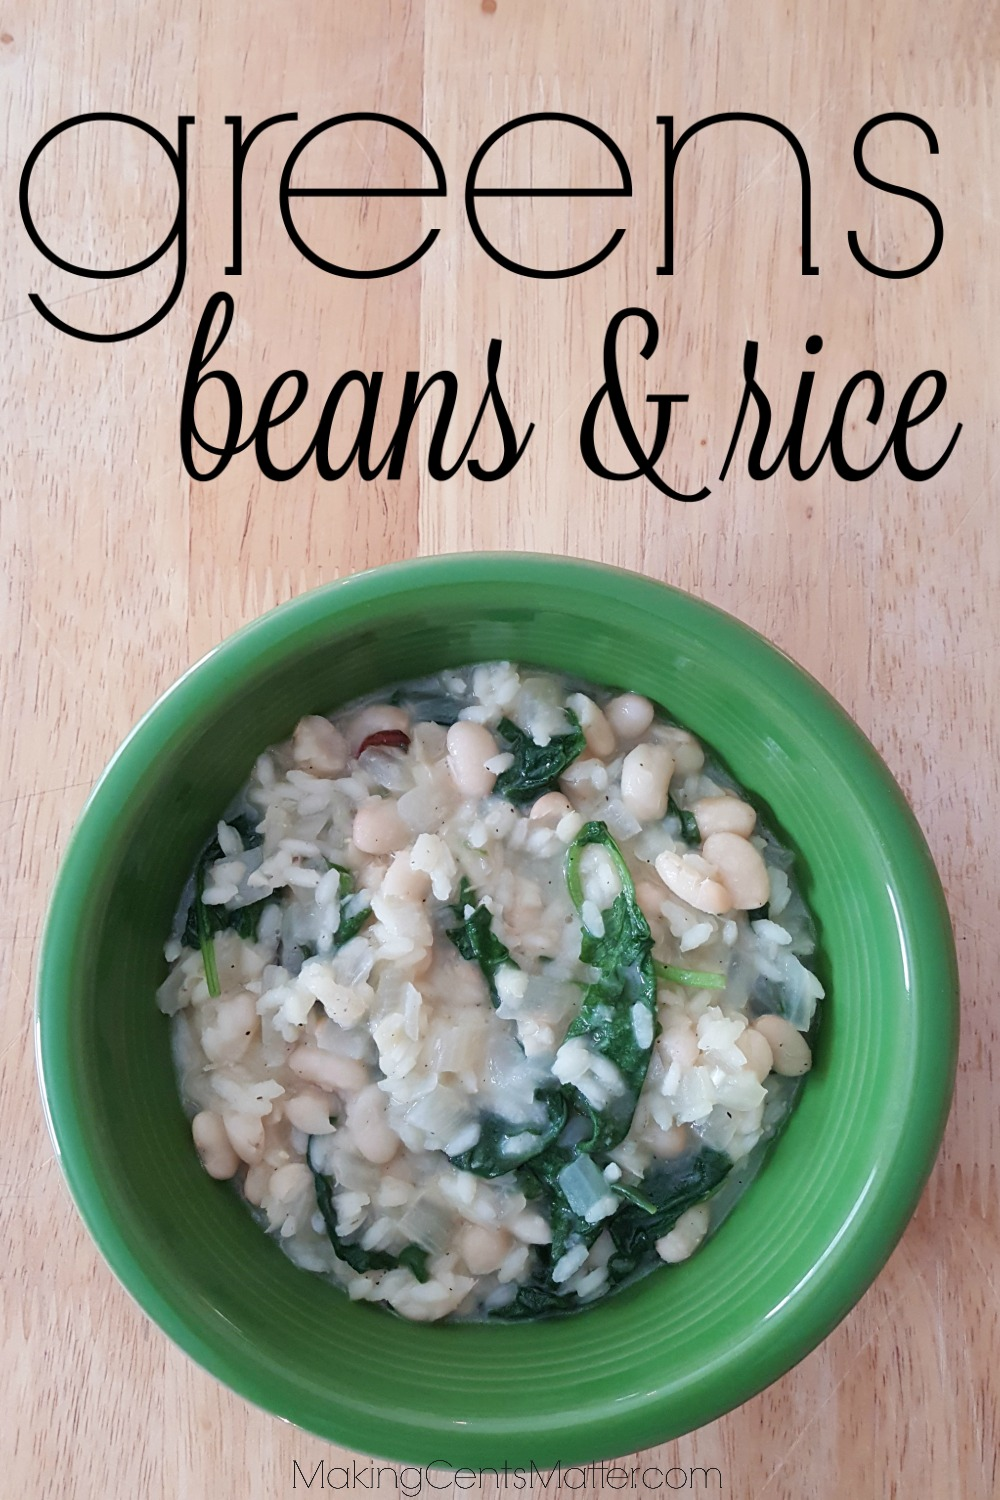 Greens Beans Rice